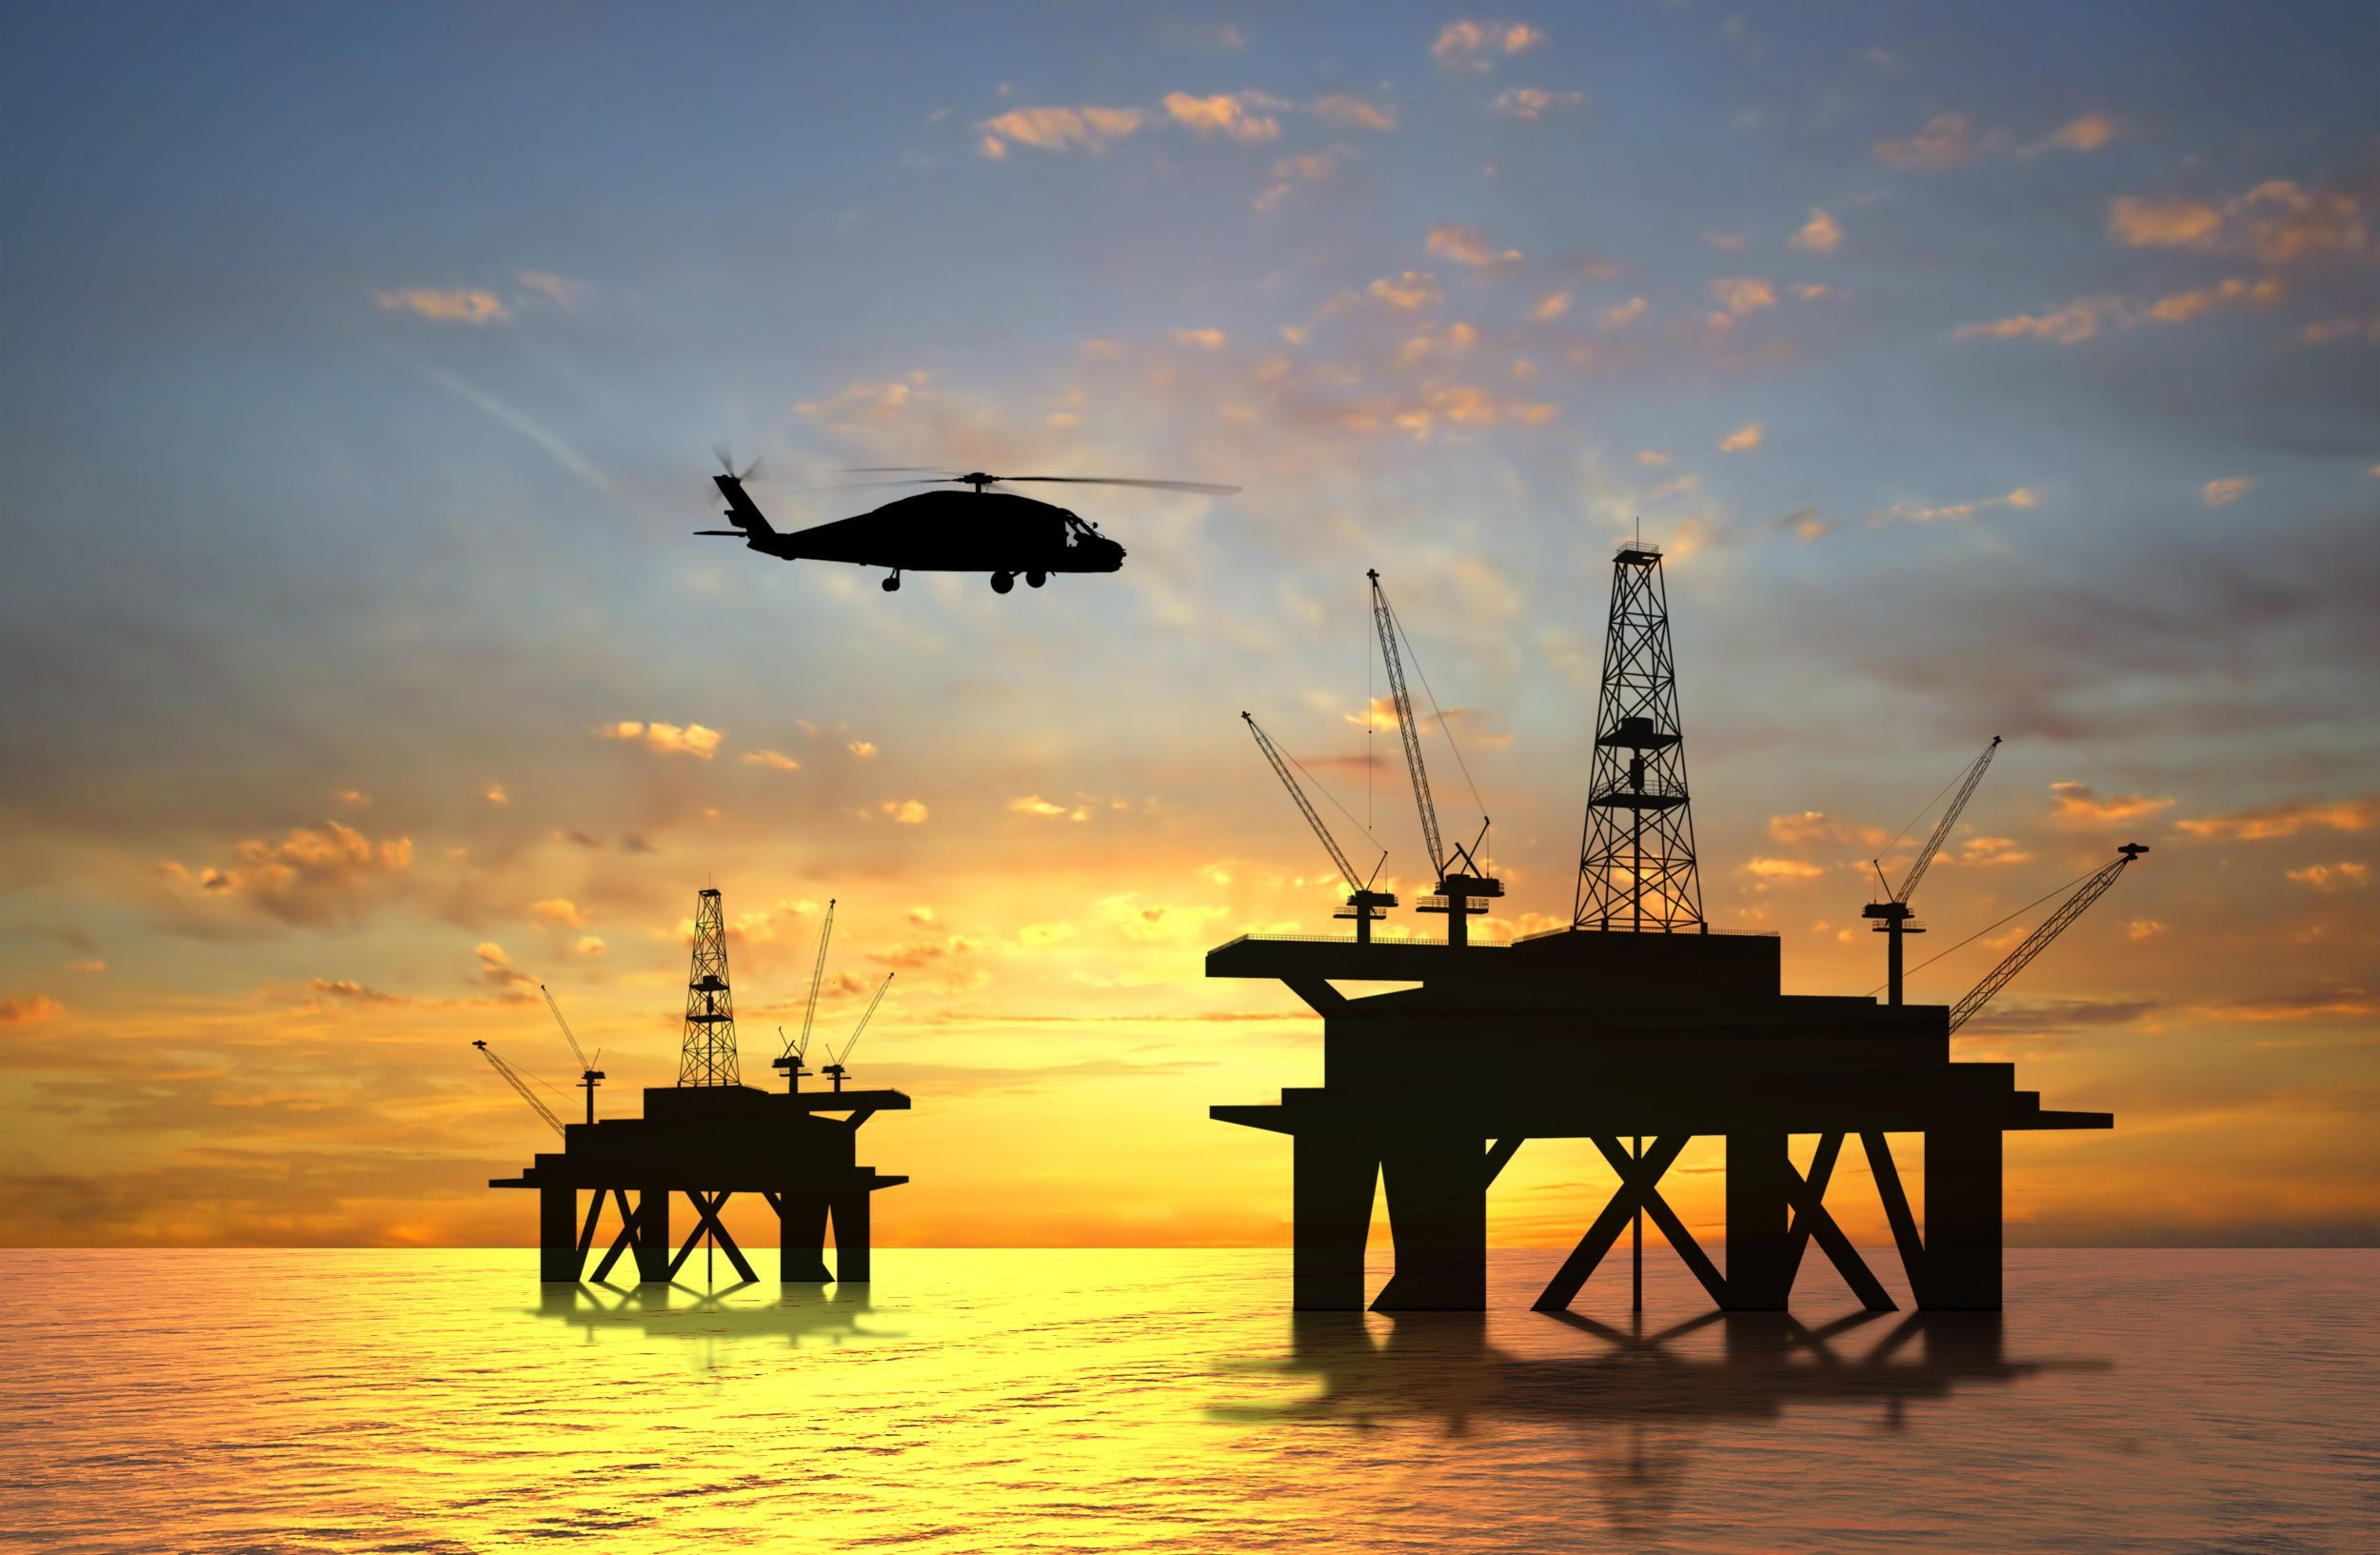 Photograph of oil drilling set up during sunset conceptual.